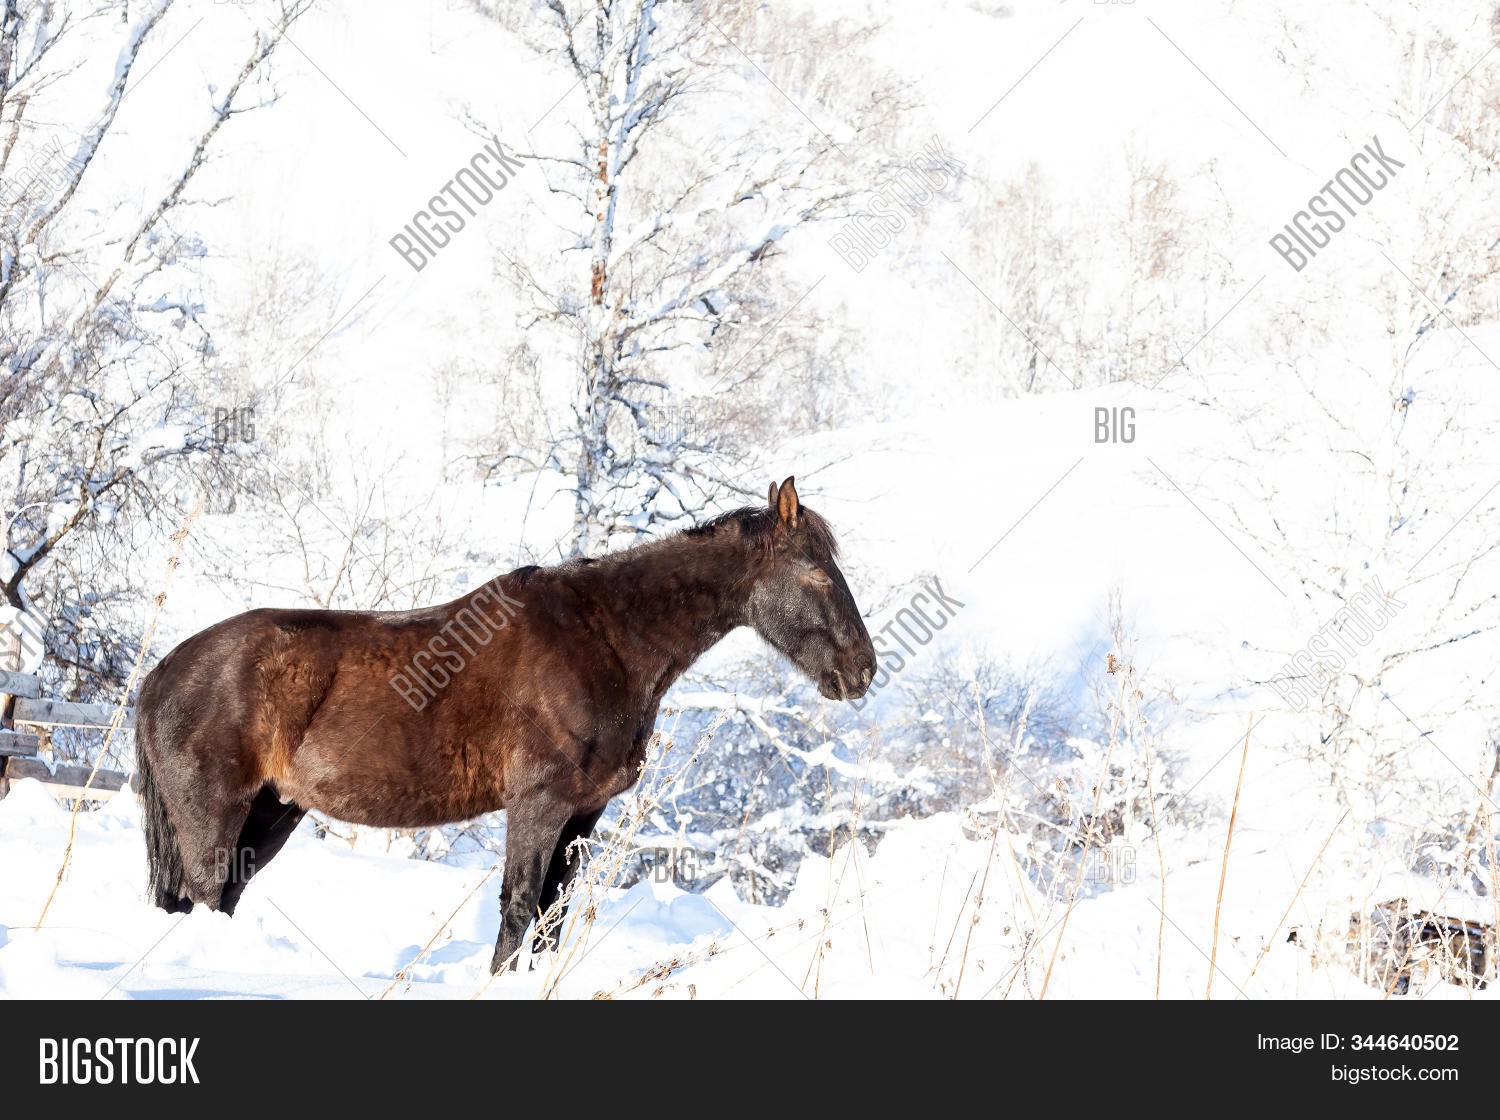 Lone Black Horse Image Photo Free Trial Bigstock